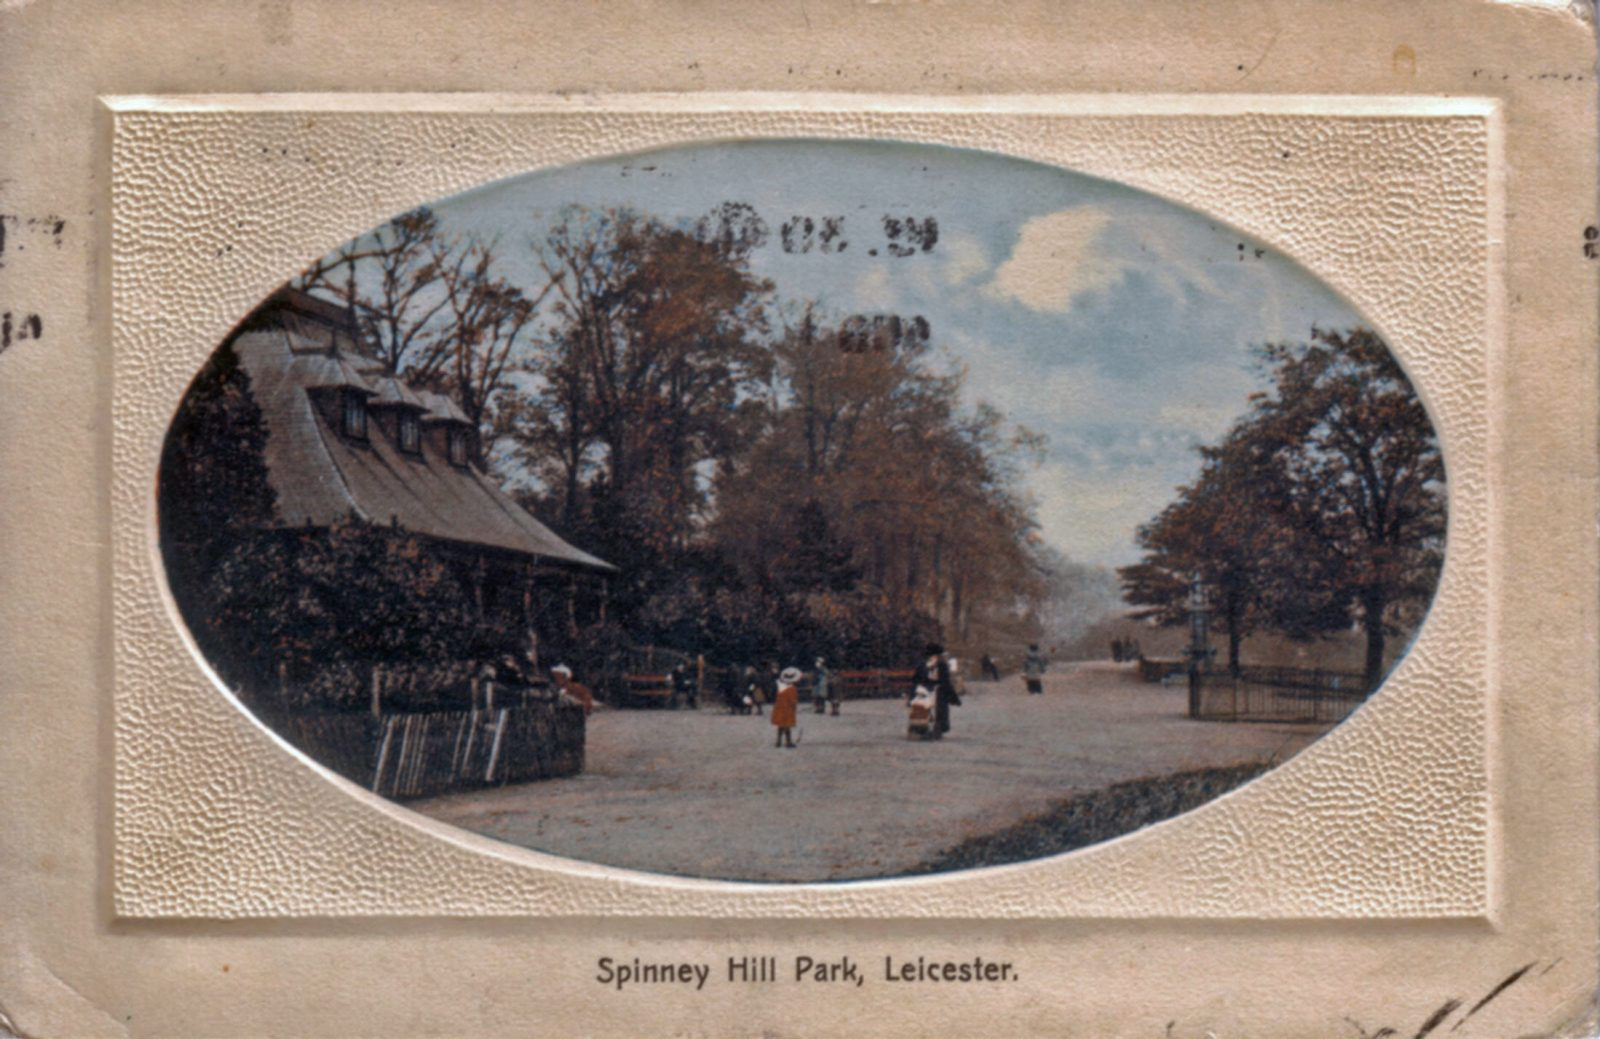 Spinney Hill Park, Leicester. 1901-1920: The Pavilion and broad avenue with people promenading and sitting. (File:1250)